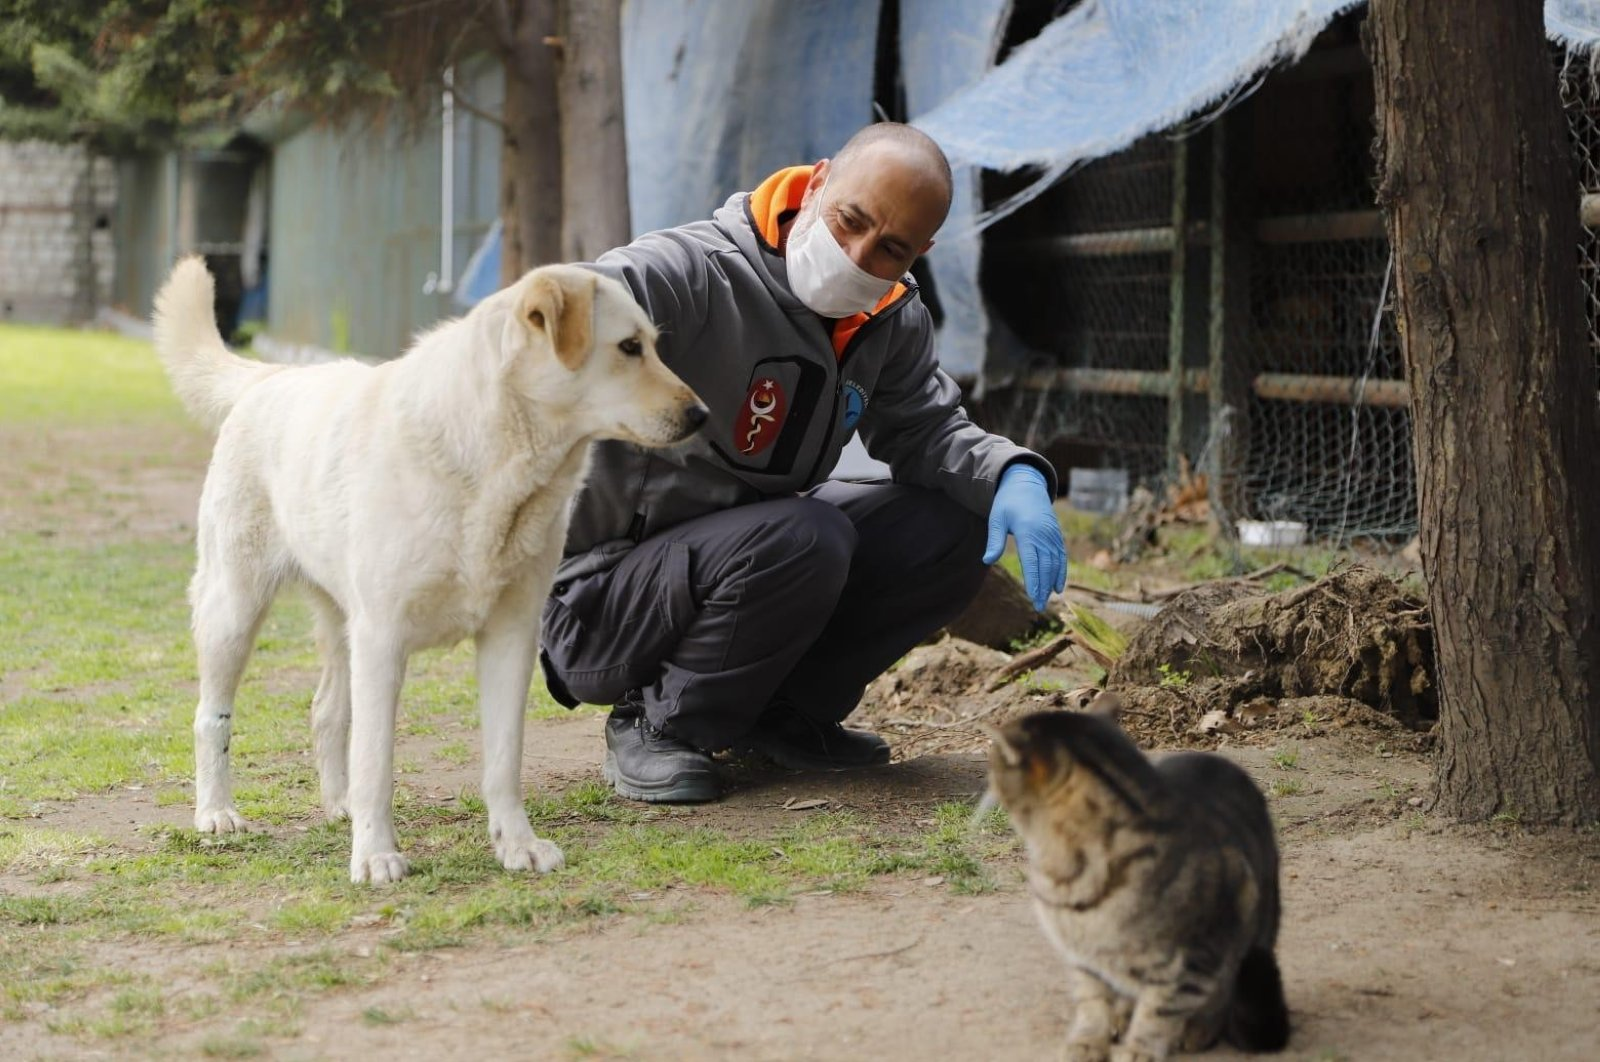 A Kağıthane Municipality worker feeds stray animals as streets remain deserted during the coronavirus outbreak, Istanbul, March 3, 2020. (İHA Photo)